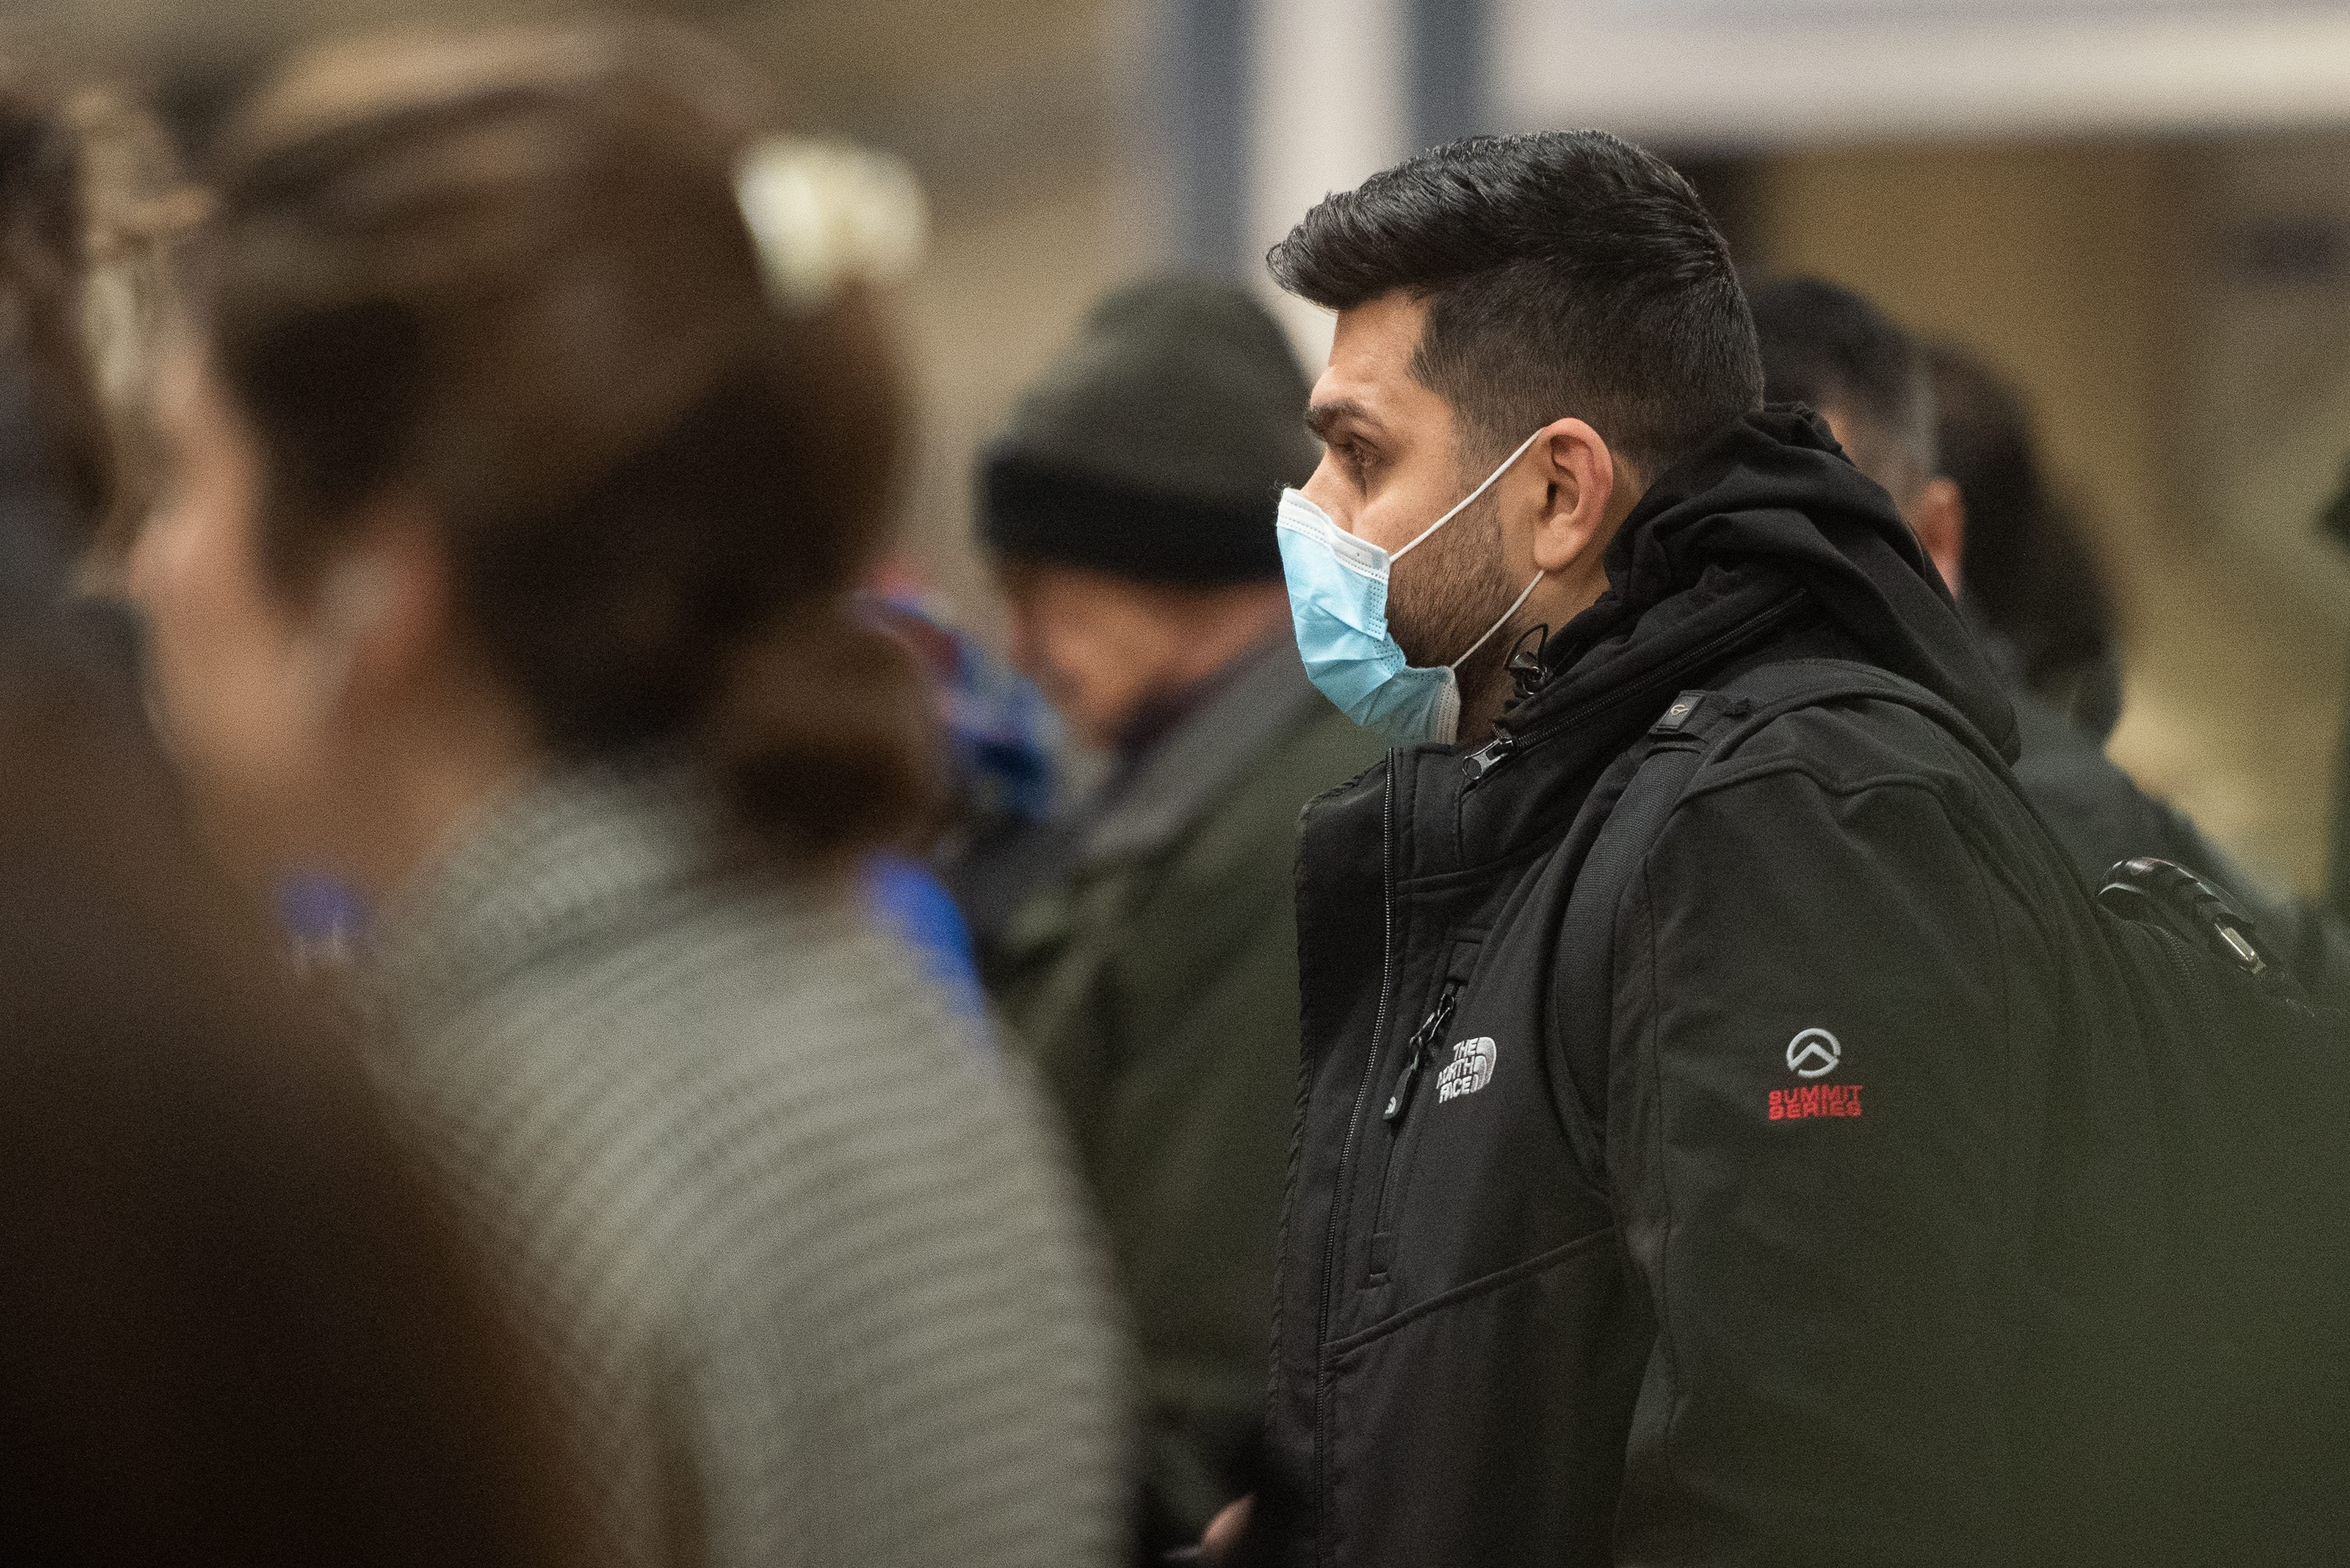 Coronavirus General View - Tuesday 3 March 2020 - London Tube, London